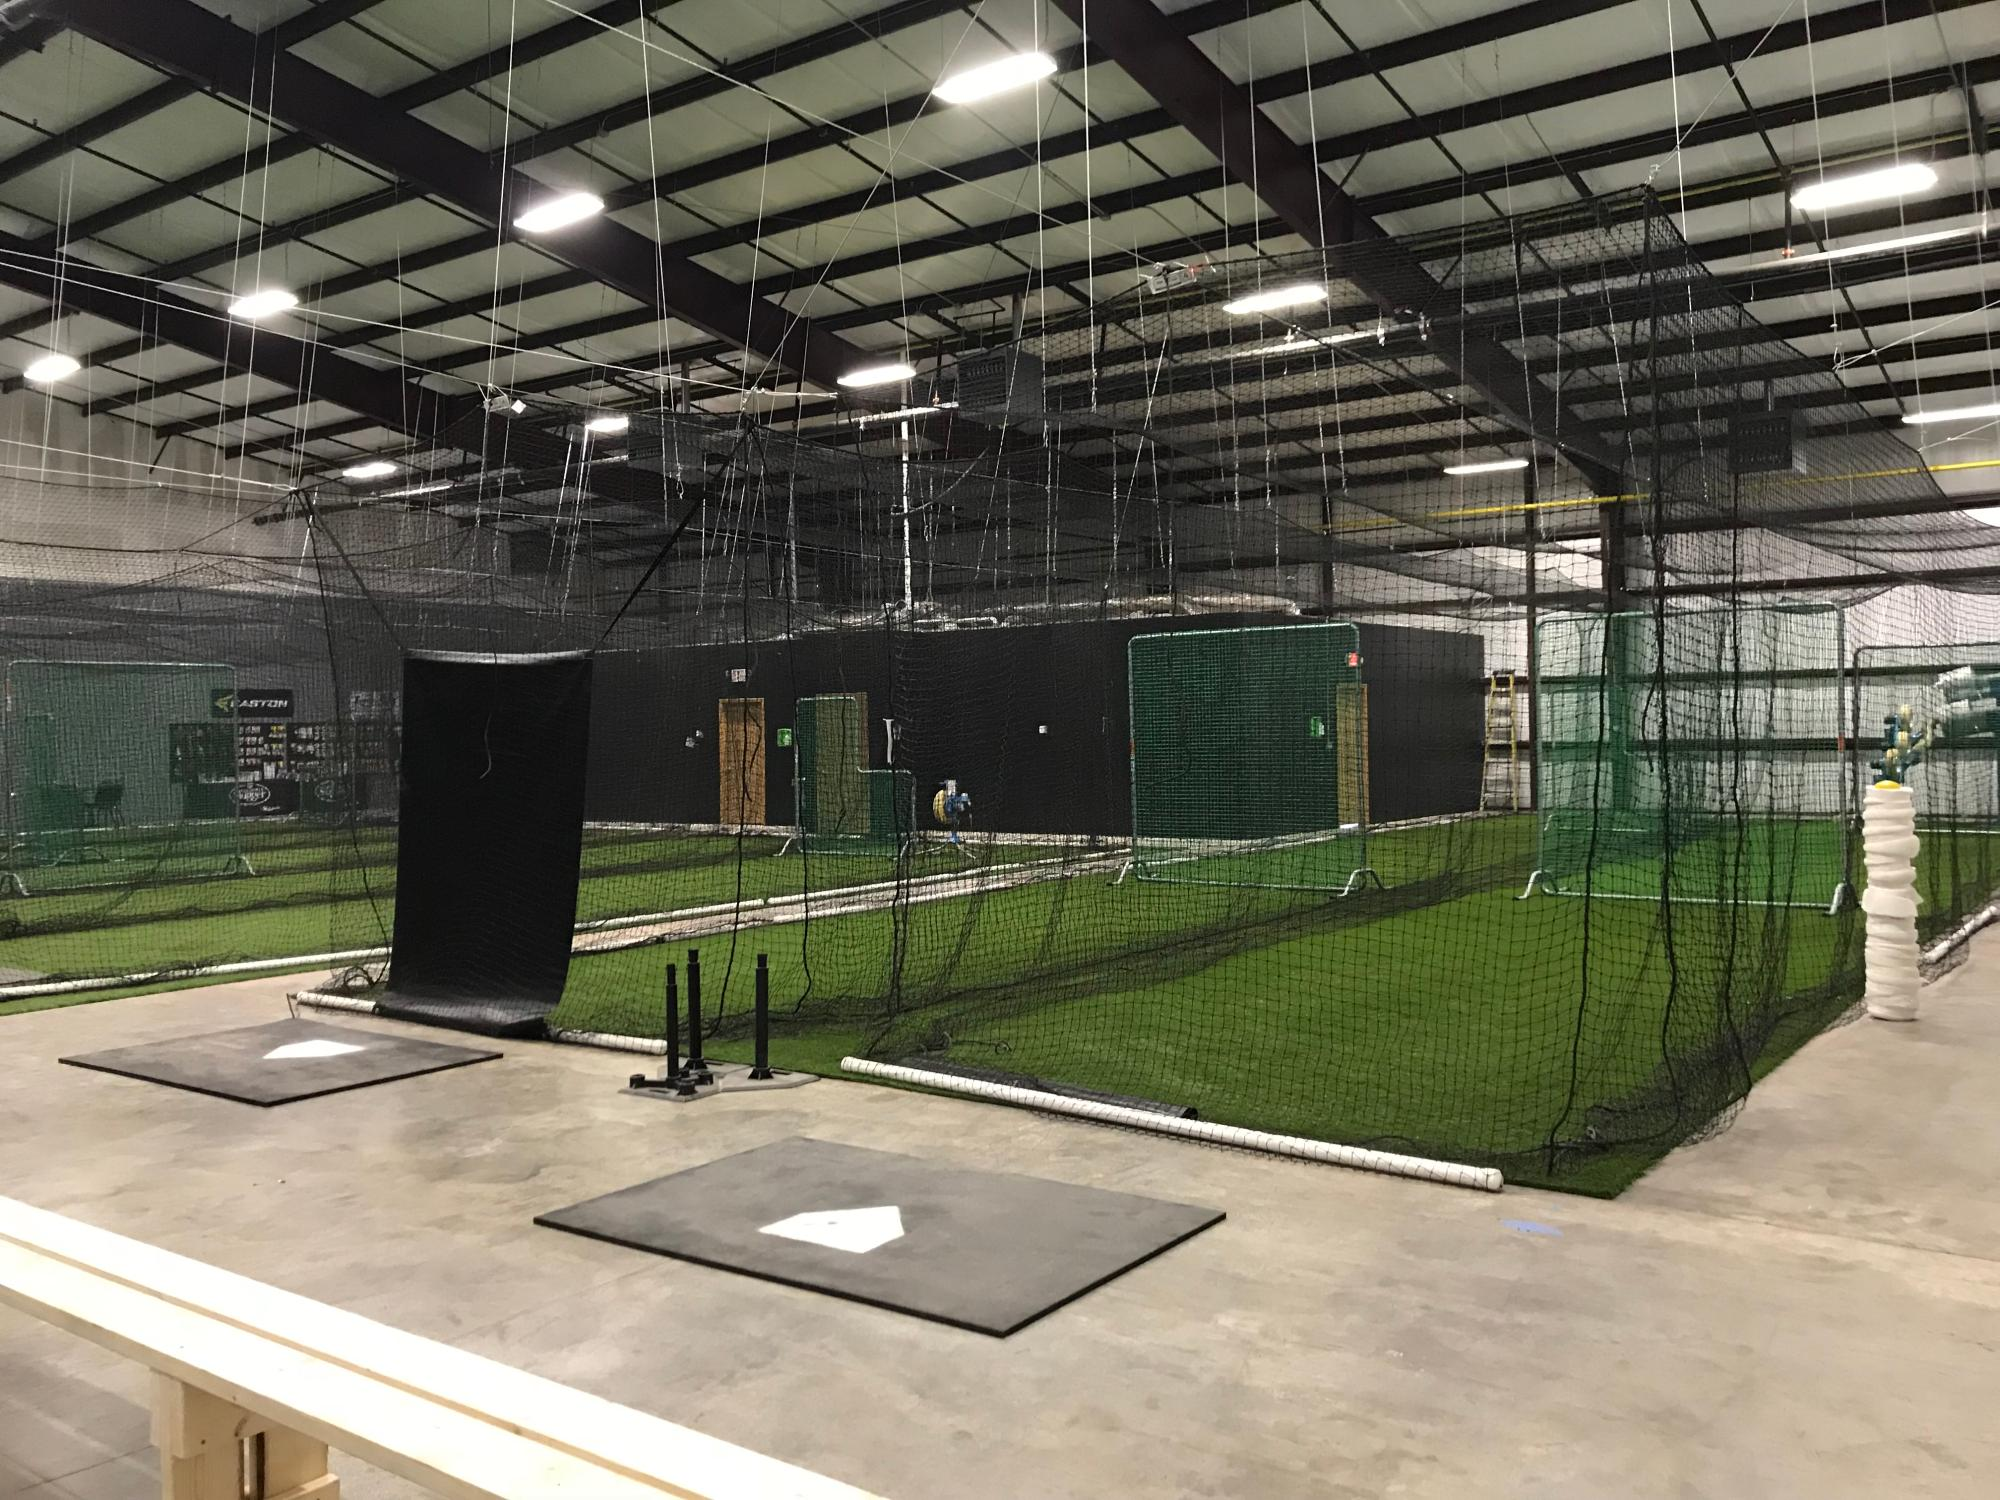 Batting cages in nwa